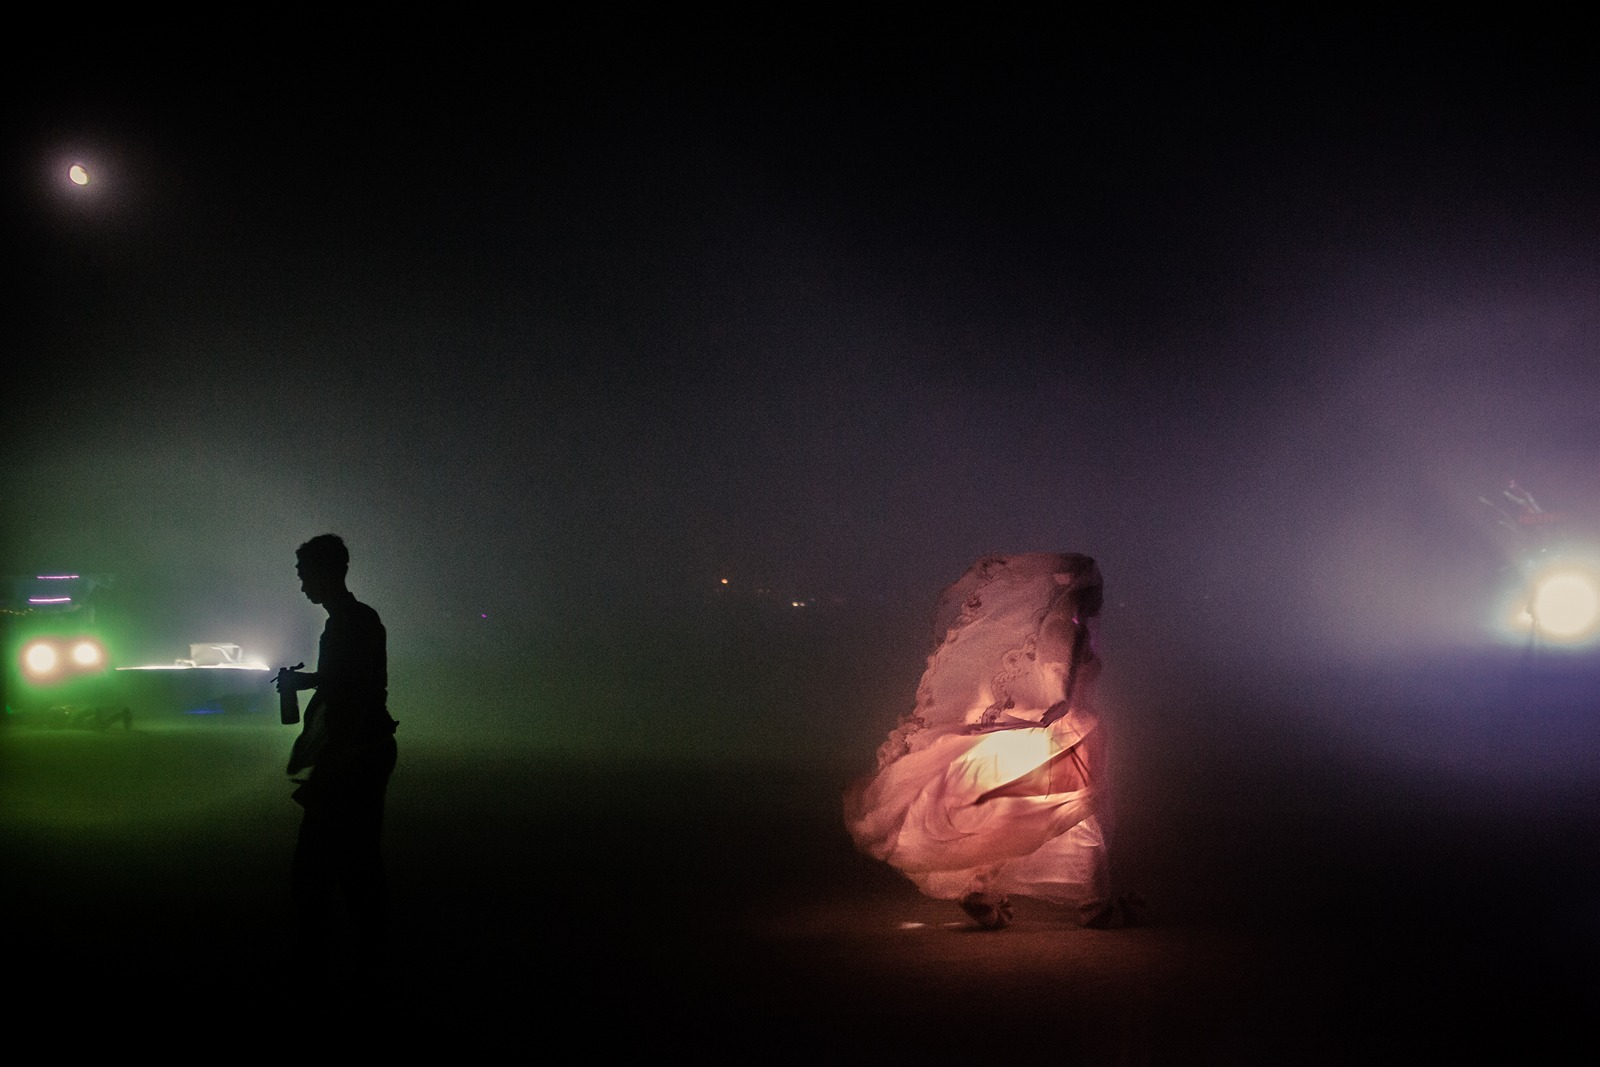 Burning Man - Ghost in the night sandstorm